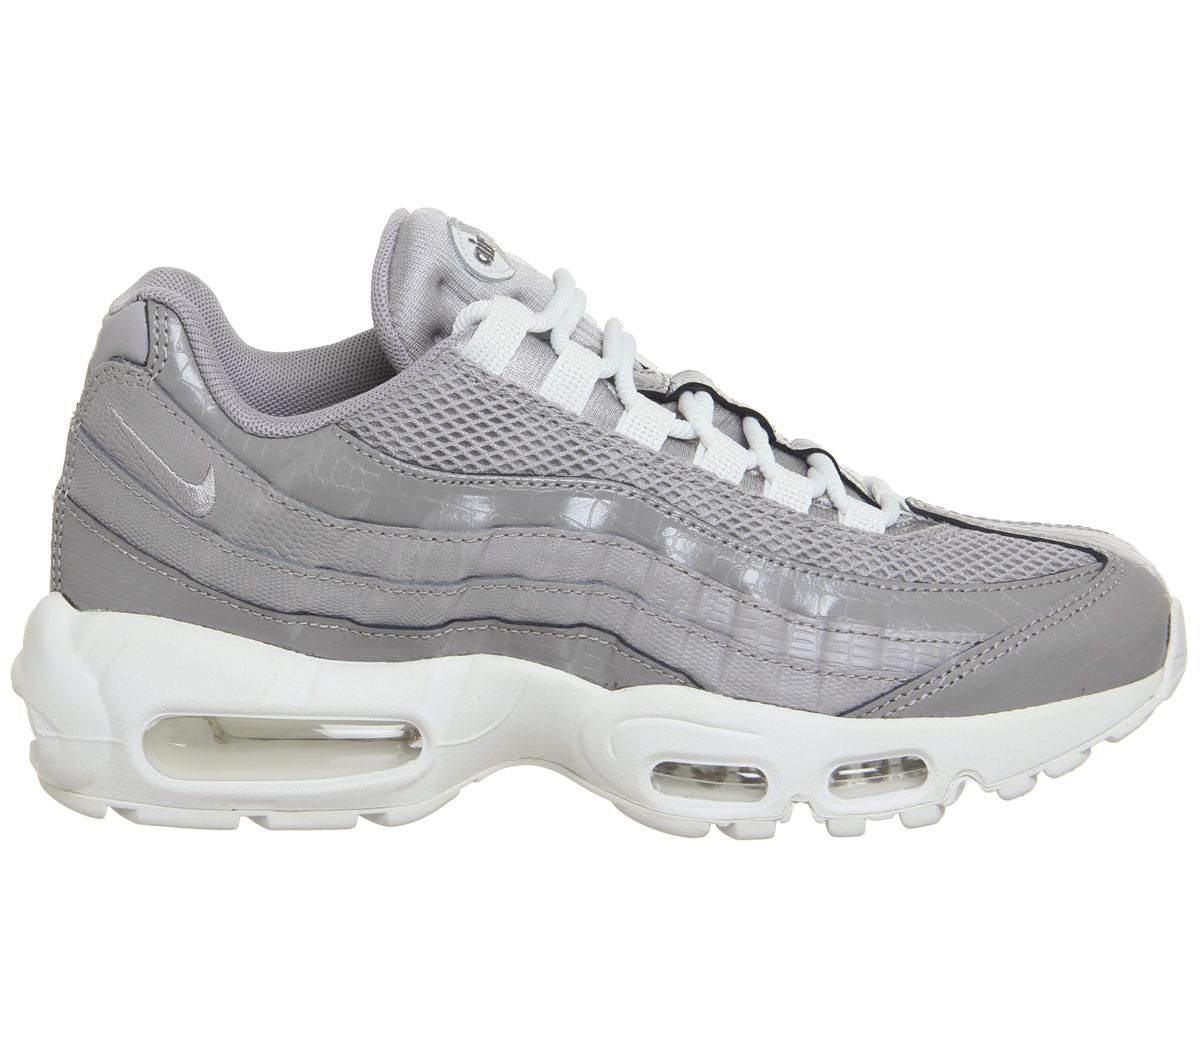 d6bc7869d8 Nike Air Max 95 Trainers Atmosphere Grey Atmosphere Grey F - Hers ...